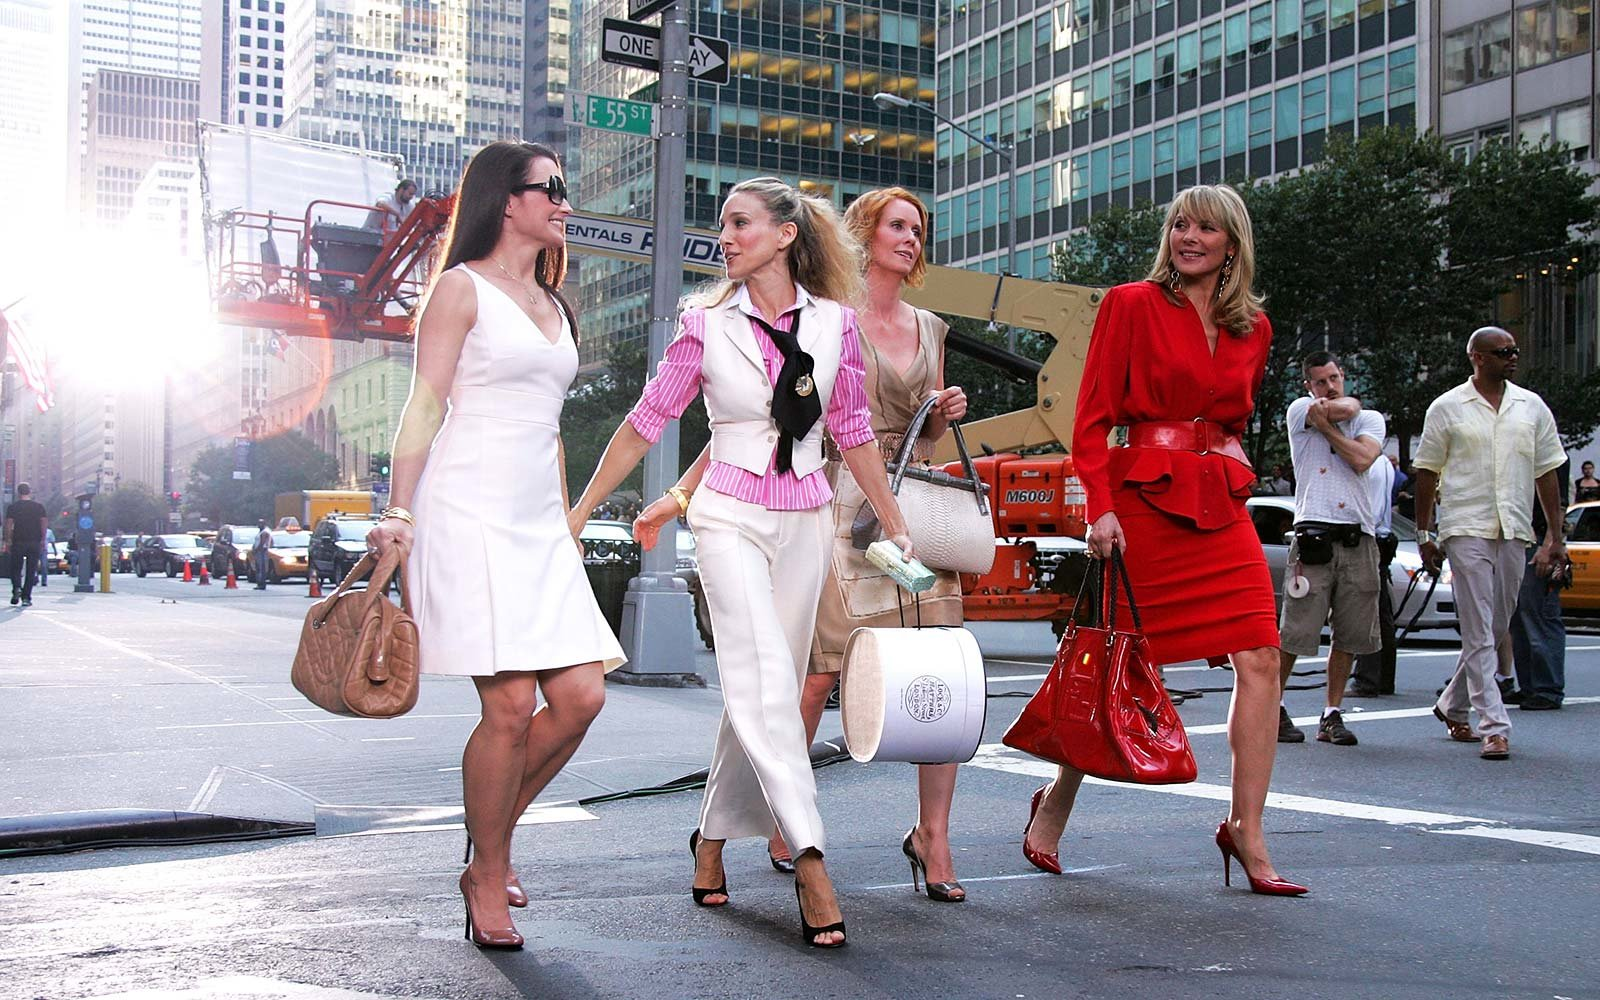 Actresses Kristin Davis, Sarah Jessica Parker, Cynthia Nixon and Kim Cattrall on the set of Sex In The City in New York City